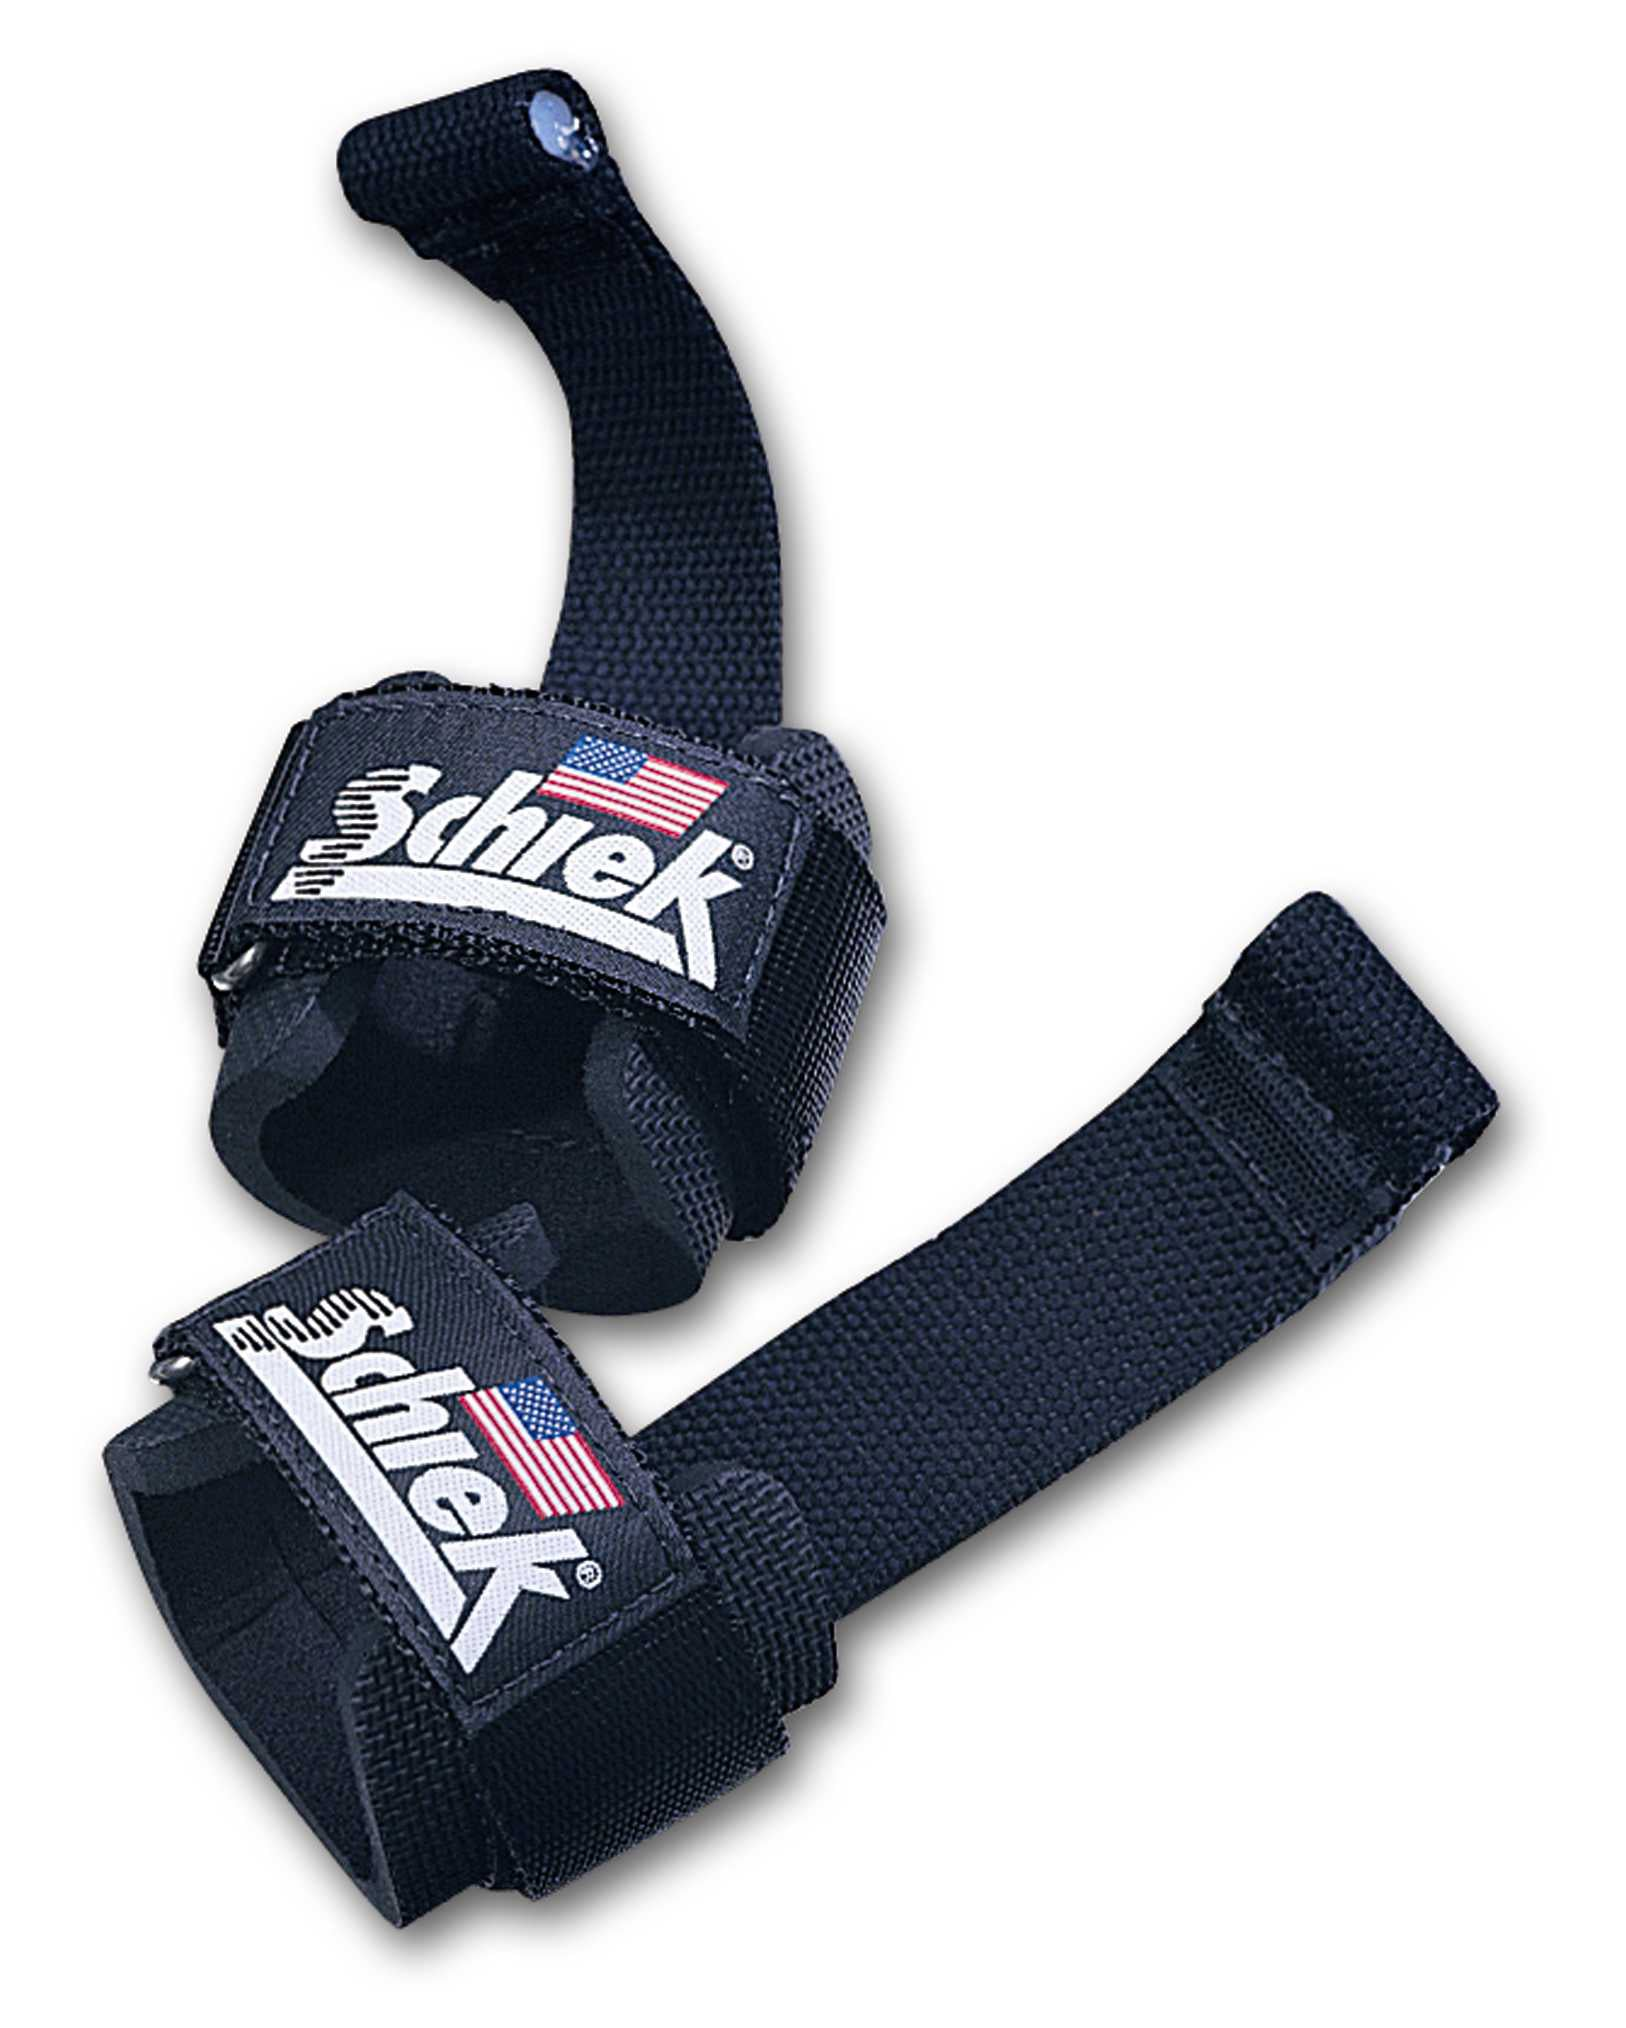 Schiek Model 1000DLS Dowel Lifting Straps